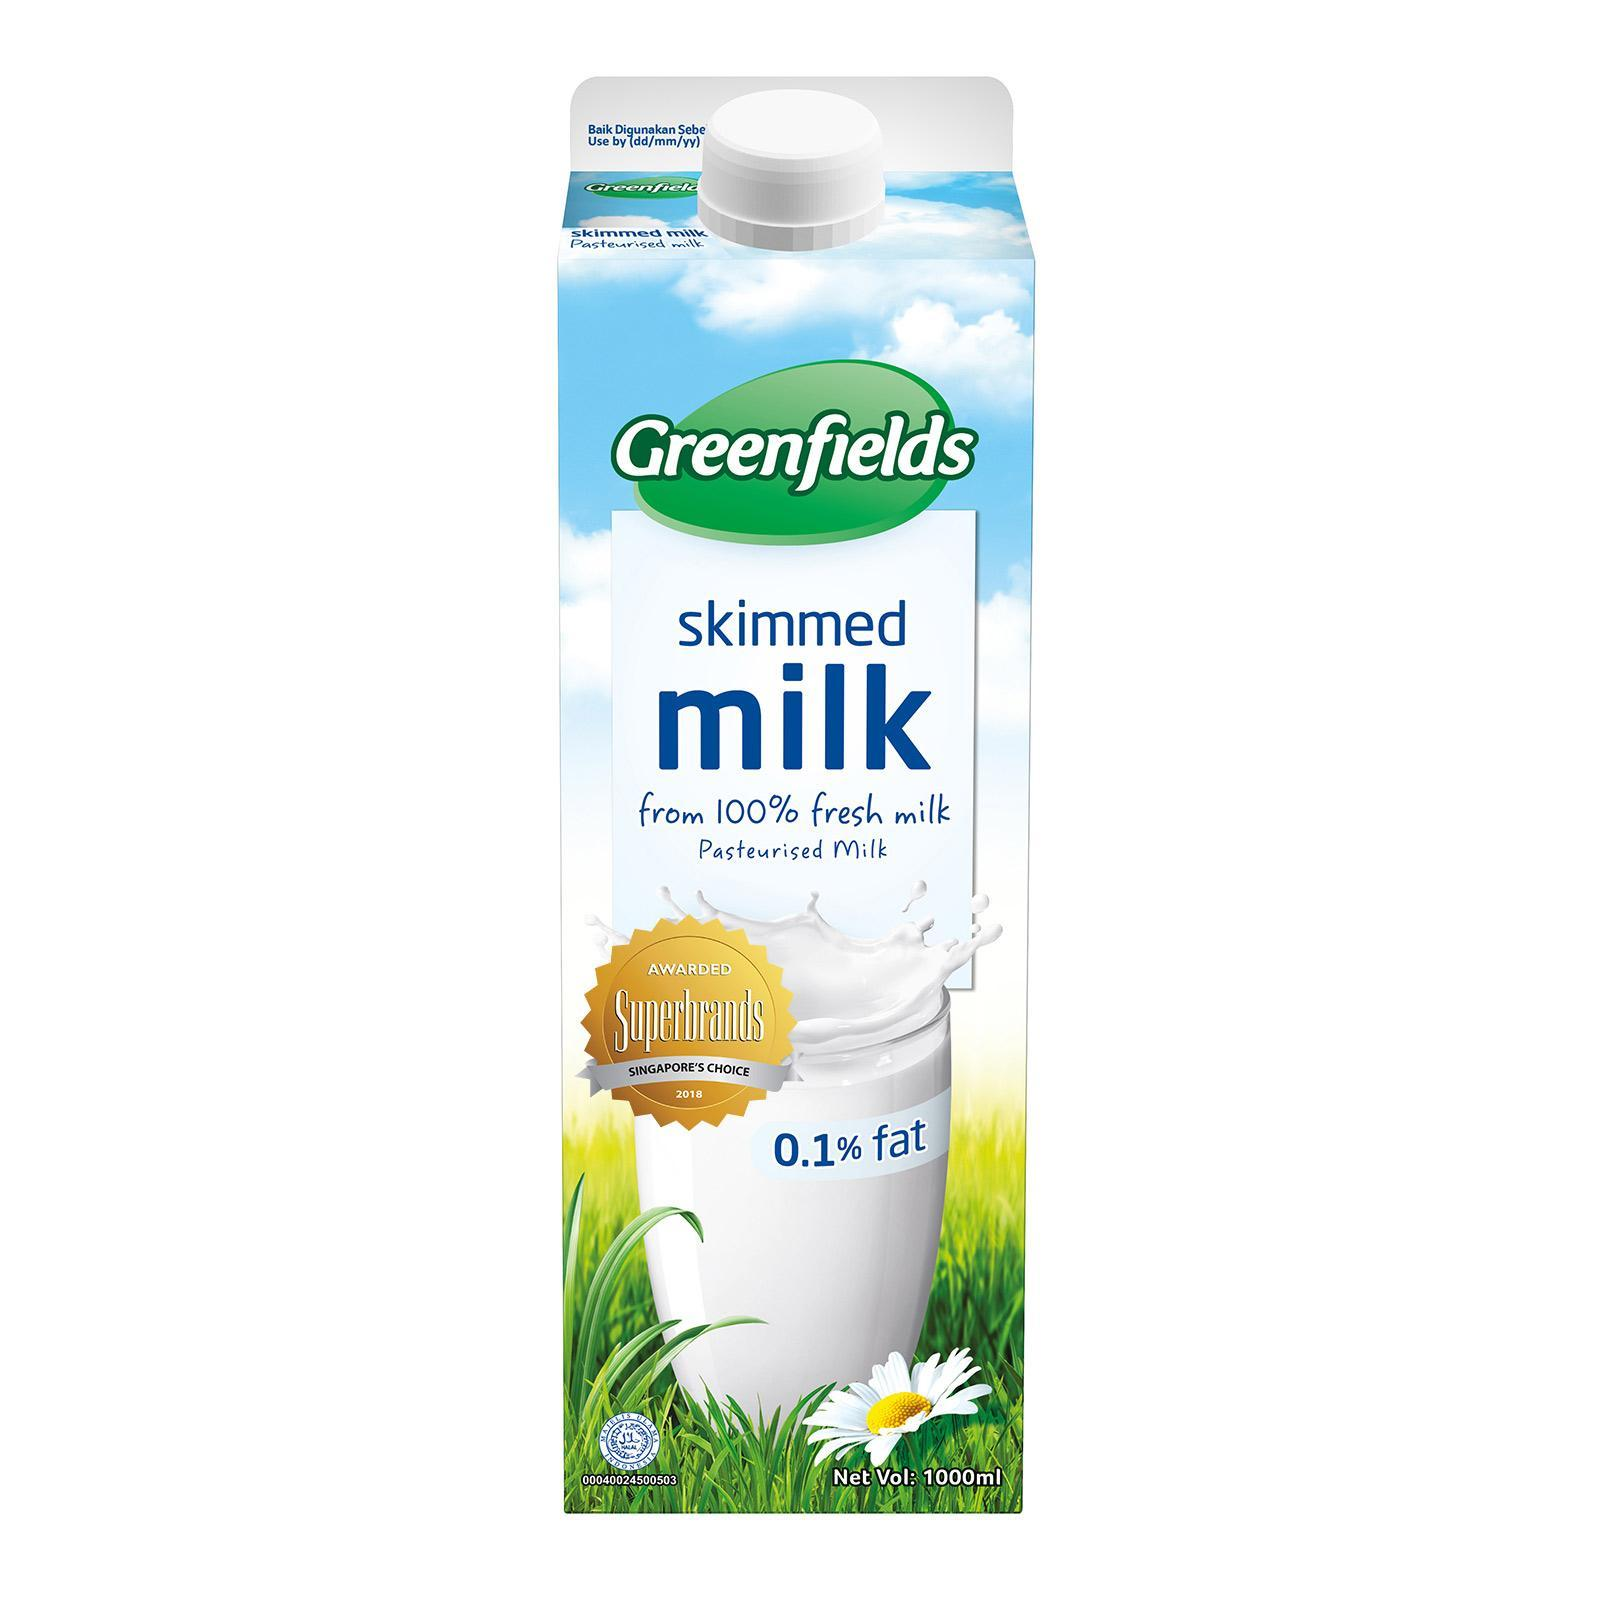 Greenfields Skim Milk By Redmart.